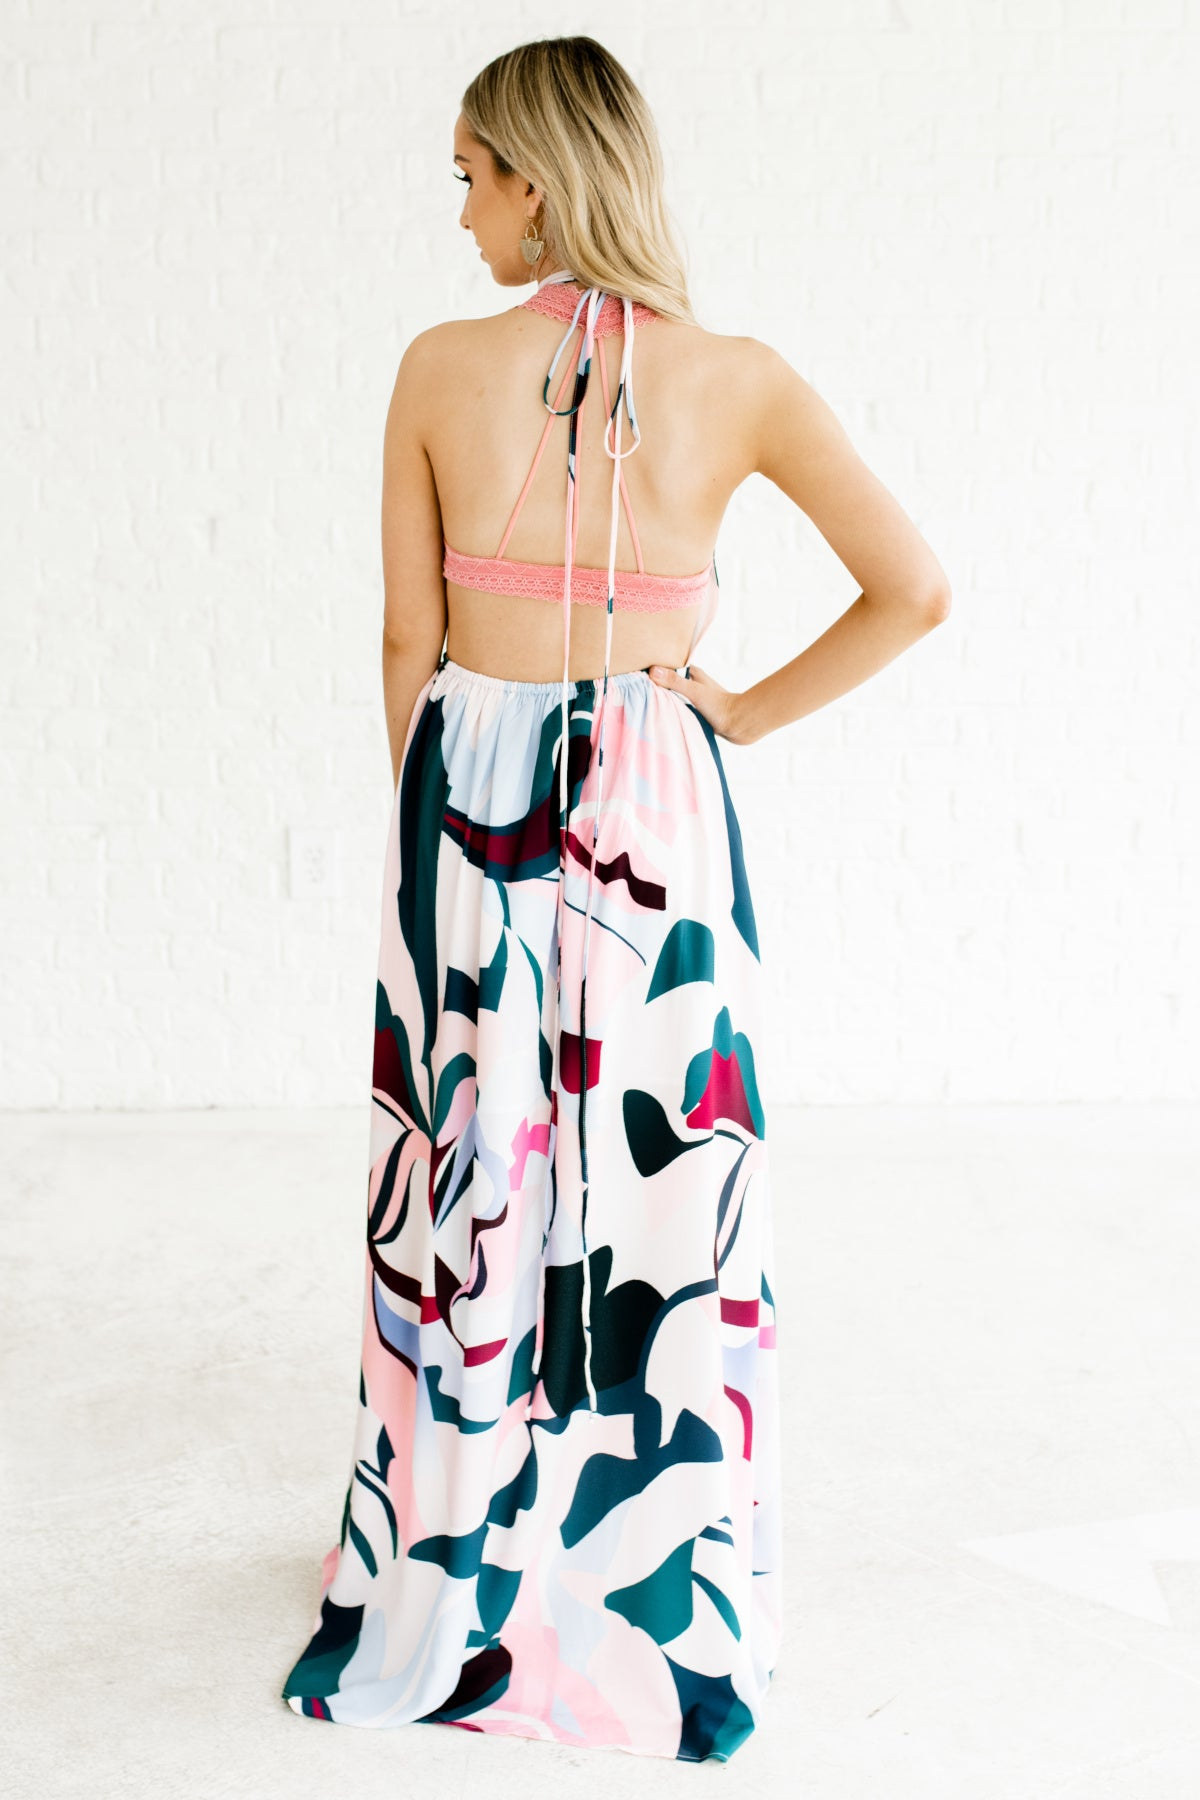 71ebe6753c0 Pink Blue Wine Teal Abstract Print Open Back Halter Dresses